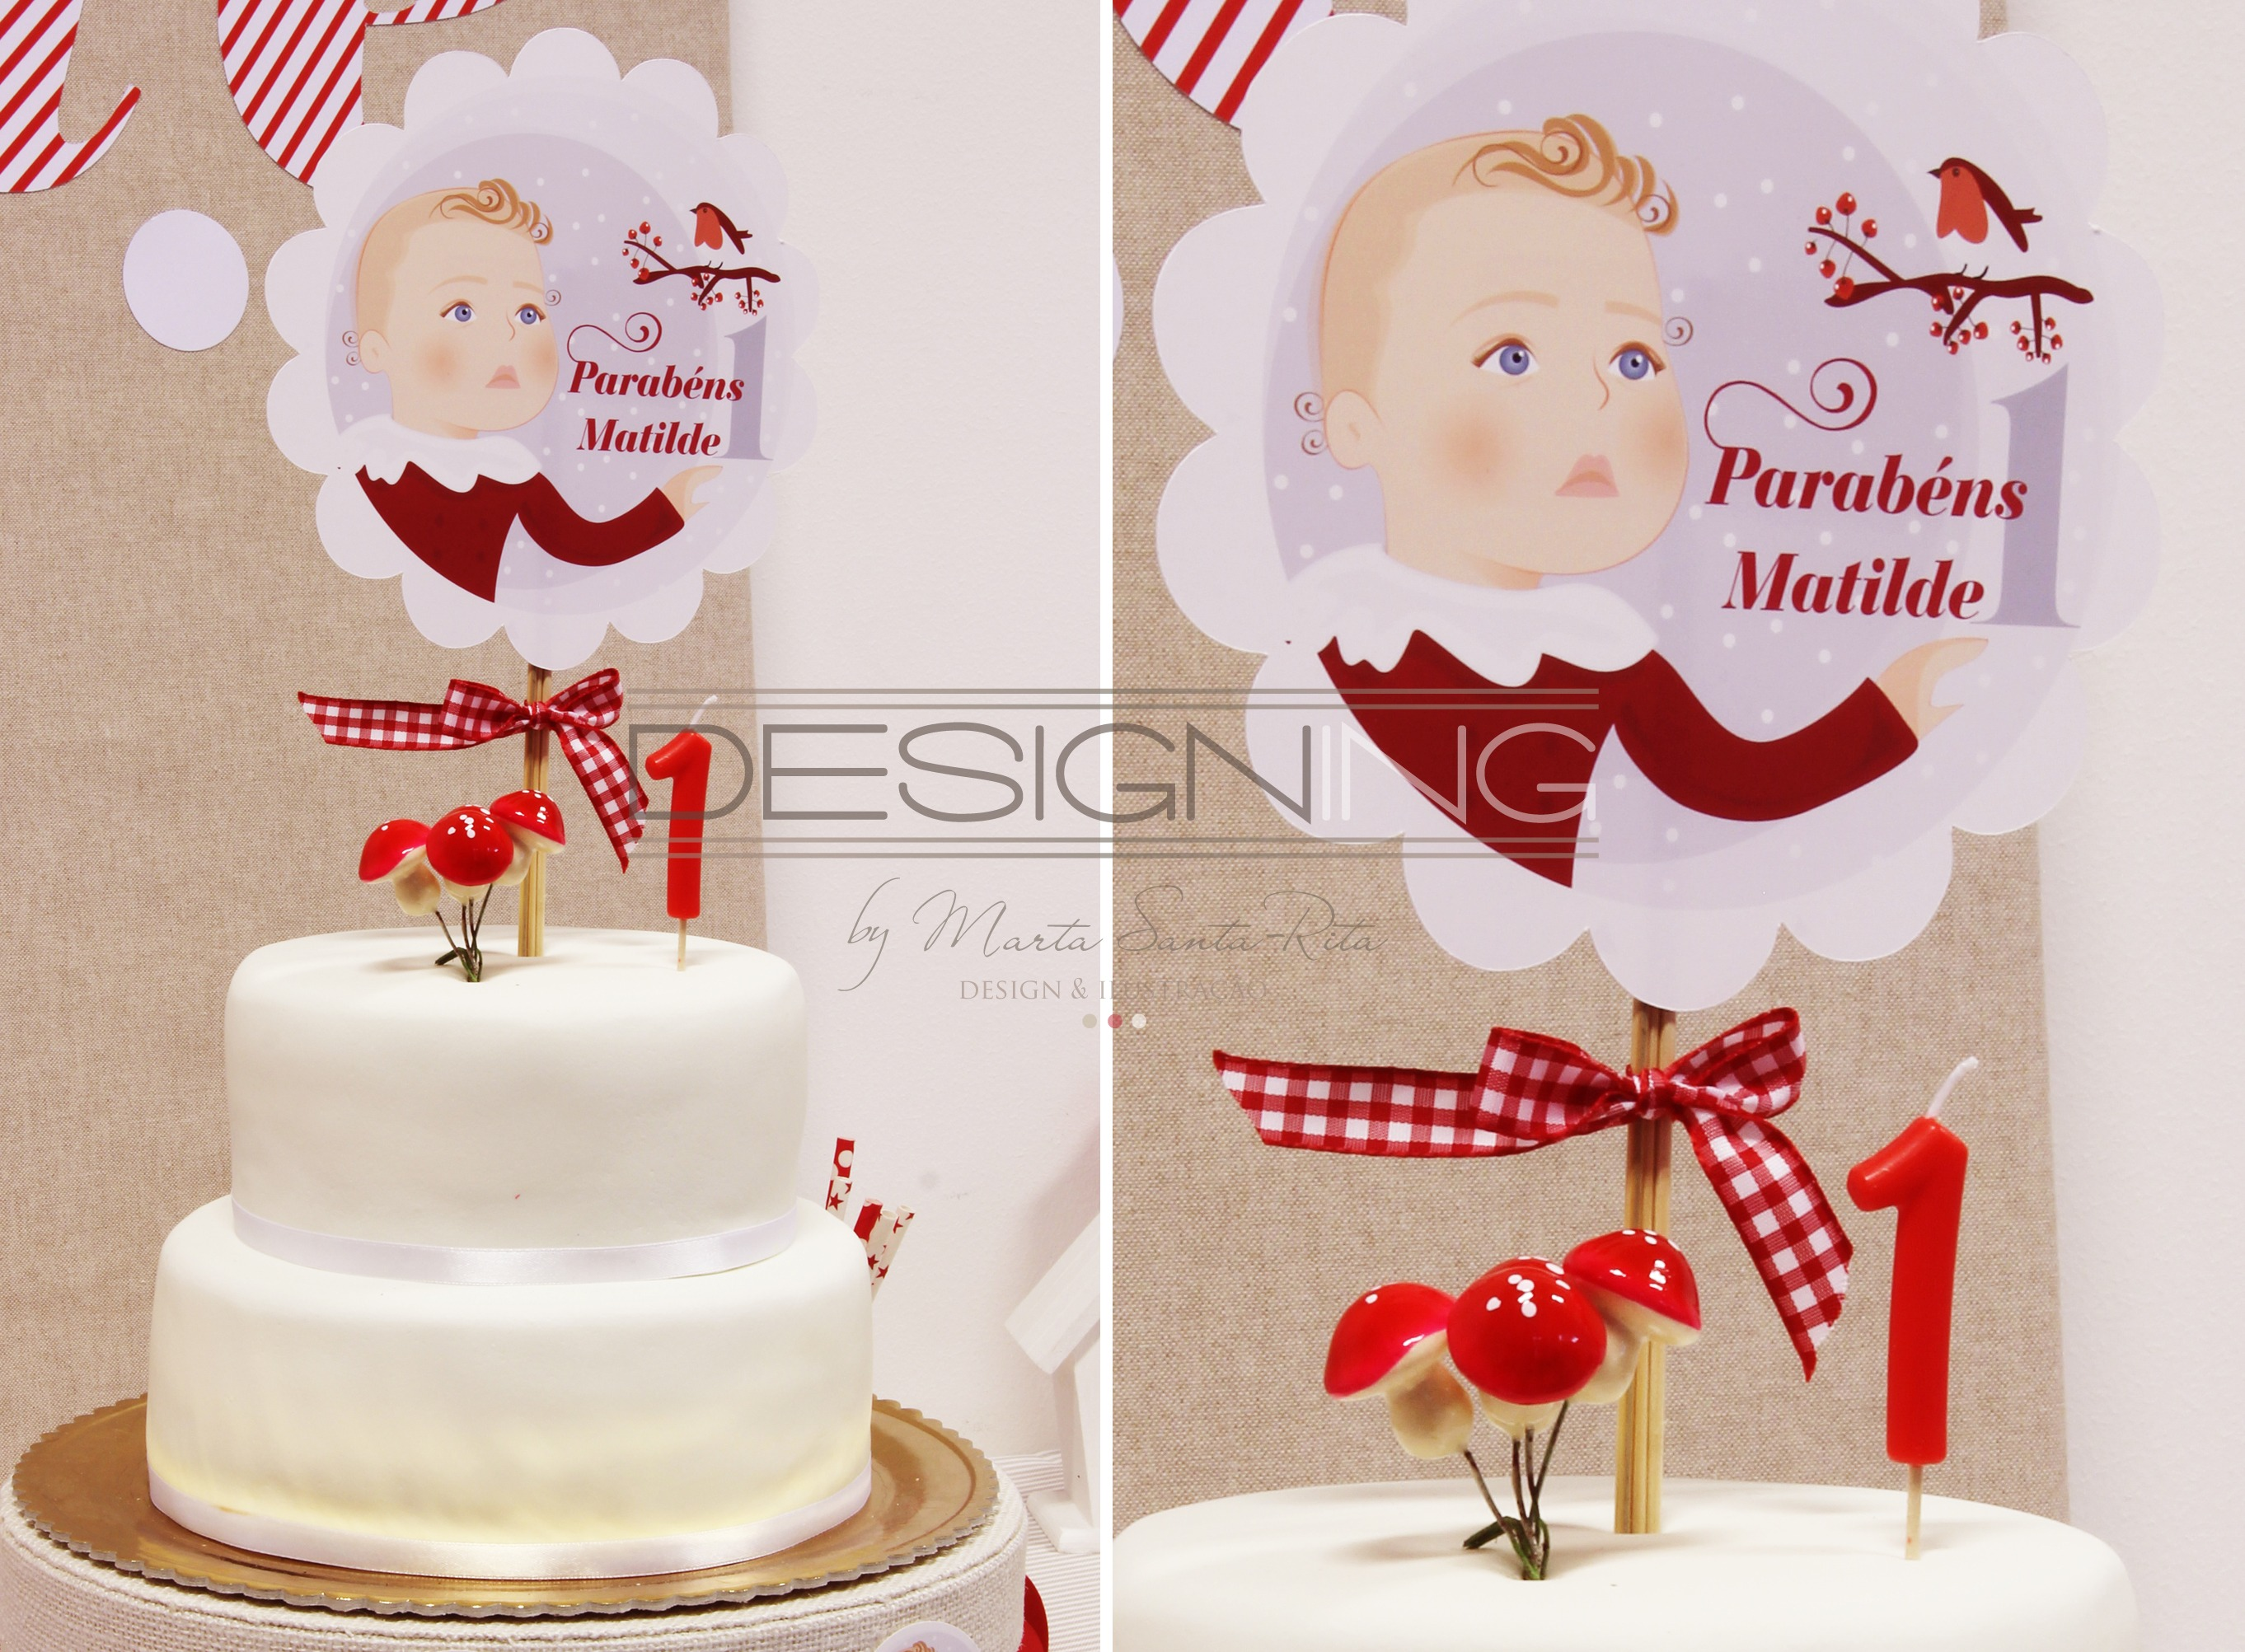 designingbymsr_matilde-party-in-style_dez2013_01a